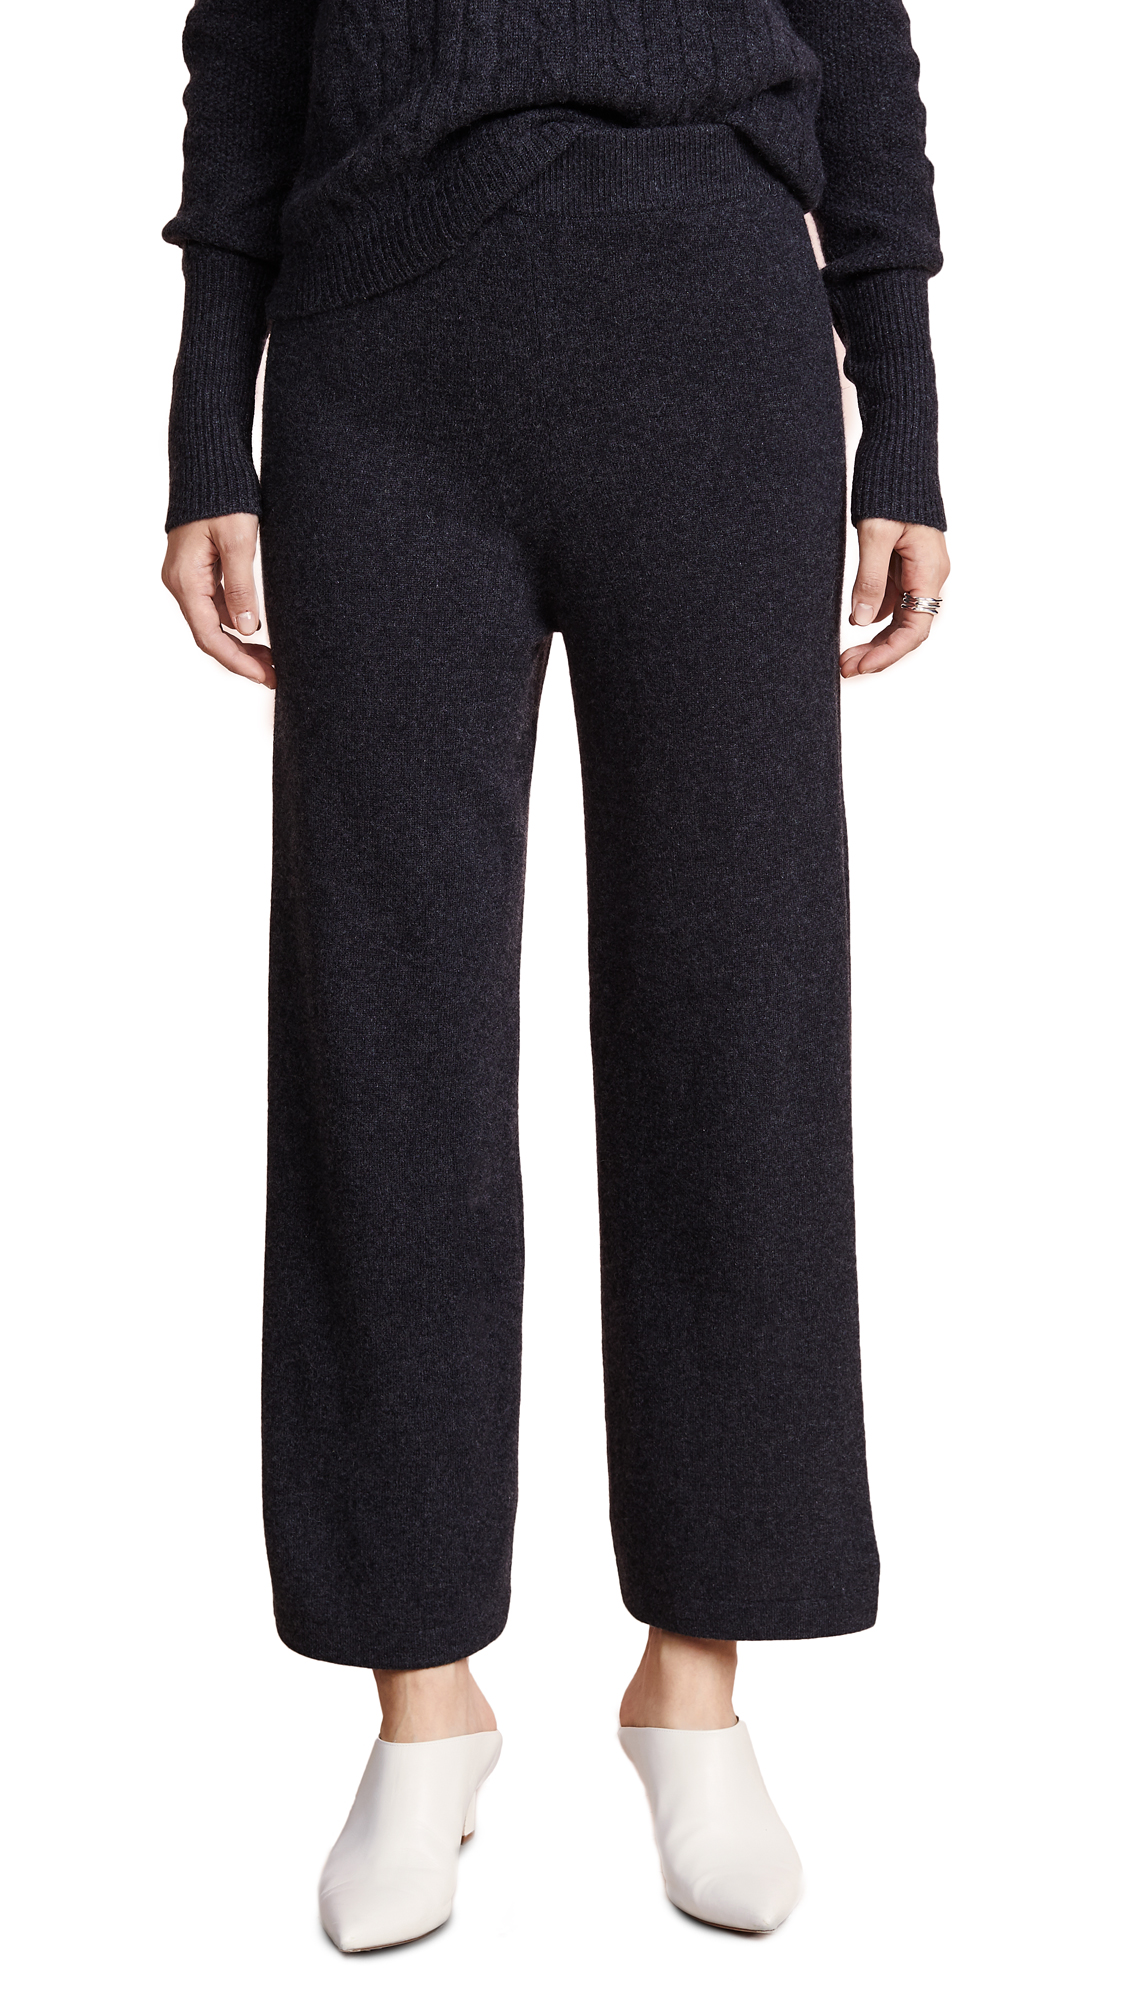 VEDA Palette Cashmere Pants in Charcoal